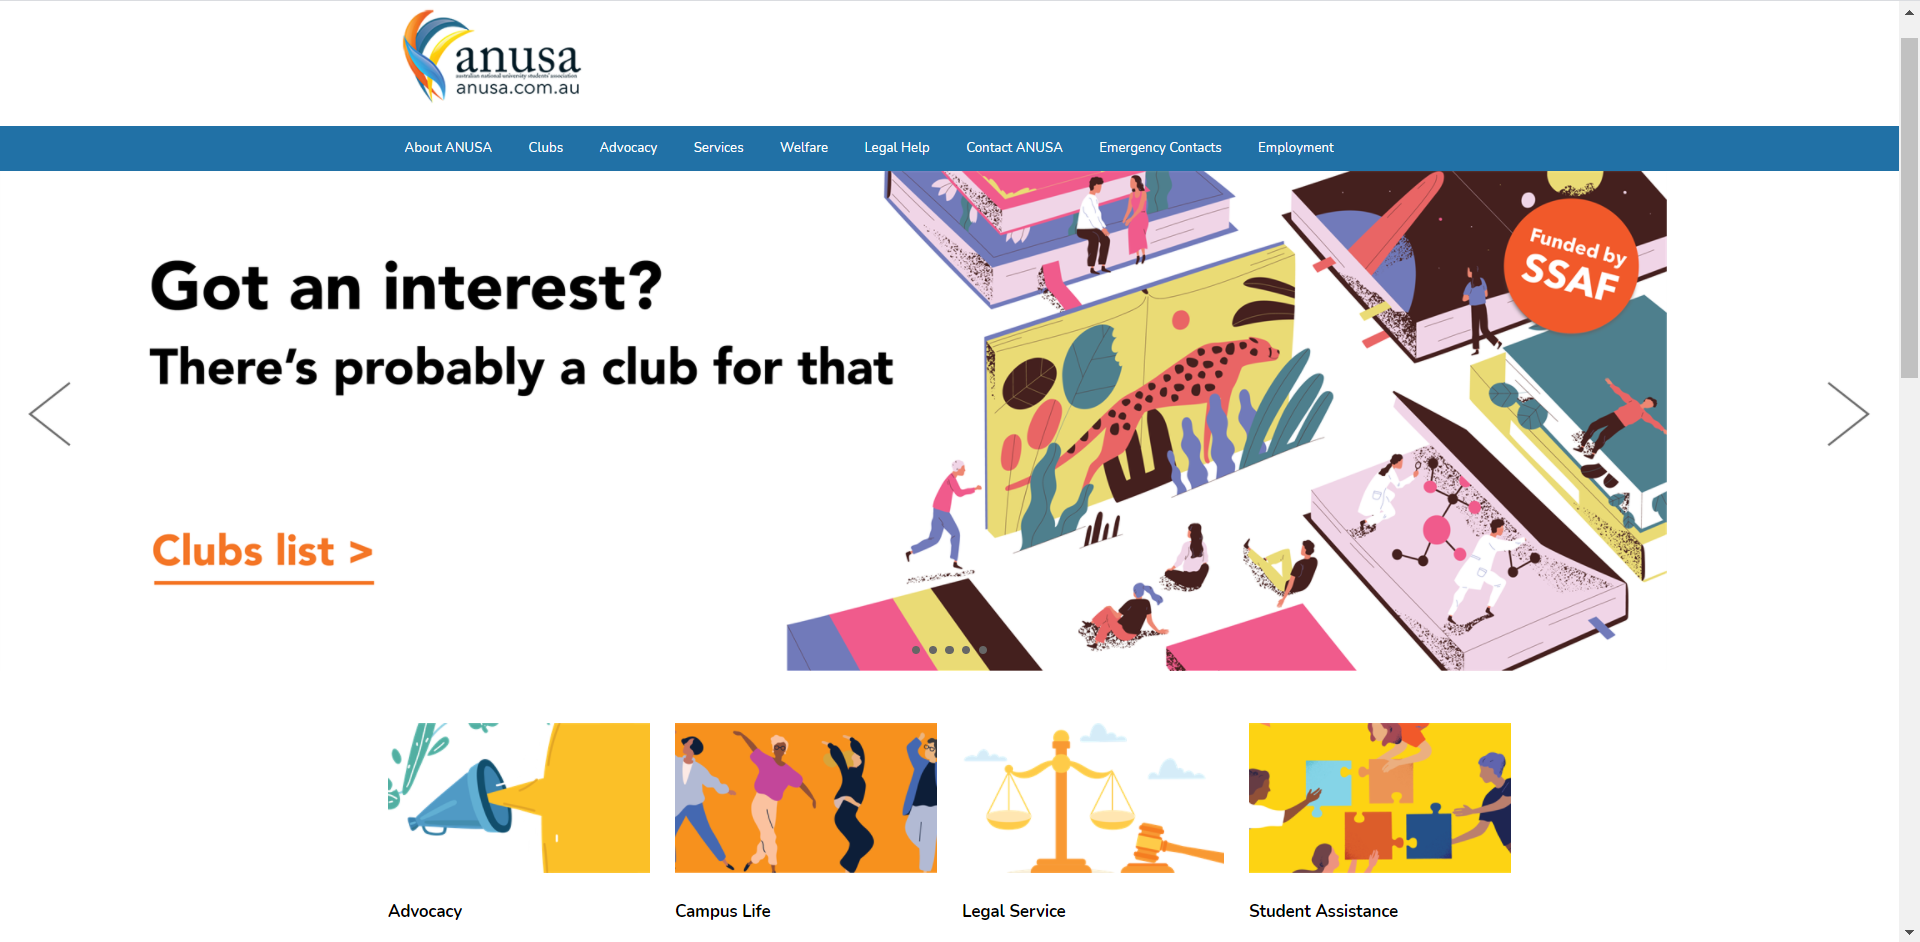 The clubs home page banner on the ANUSA website